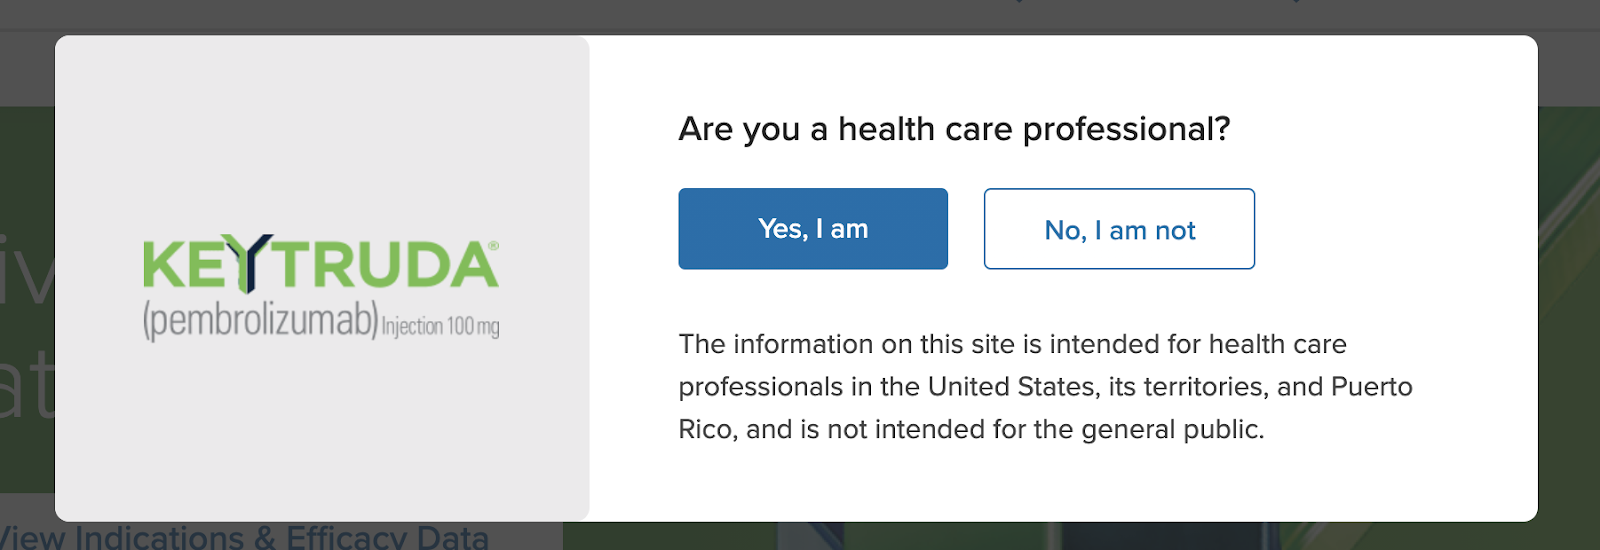 Screenshot from Keytrudahcp.com, showing the website is intended only for US healthcare professionals